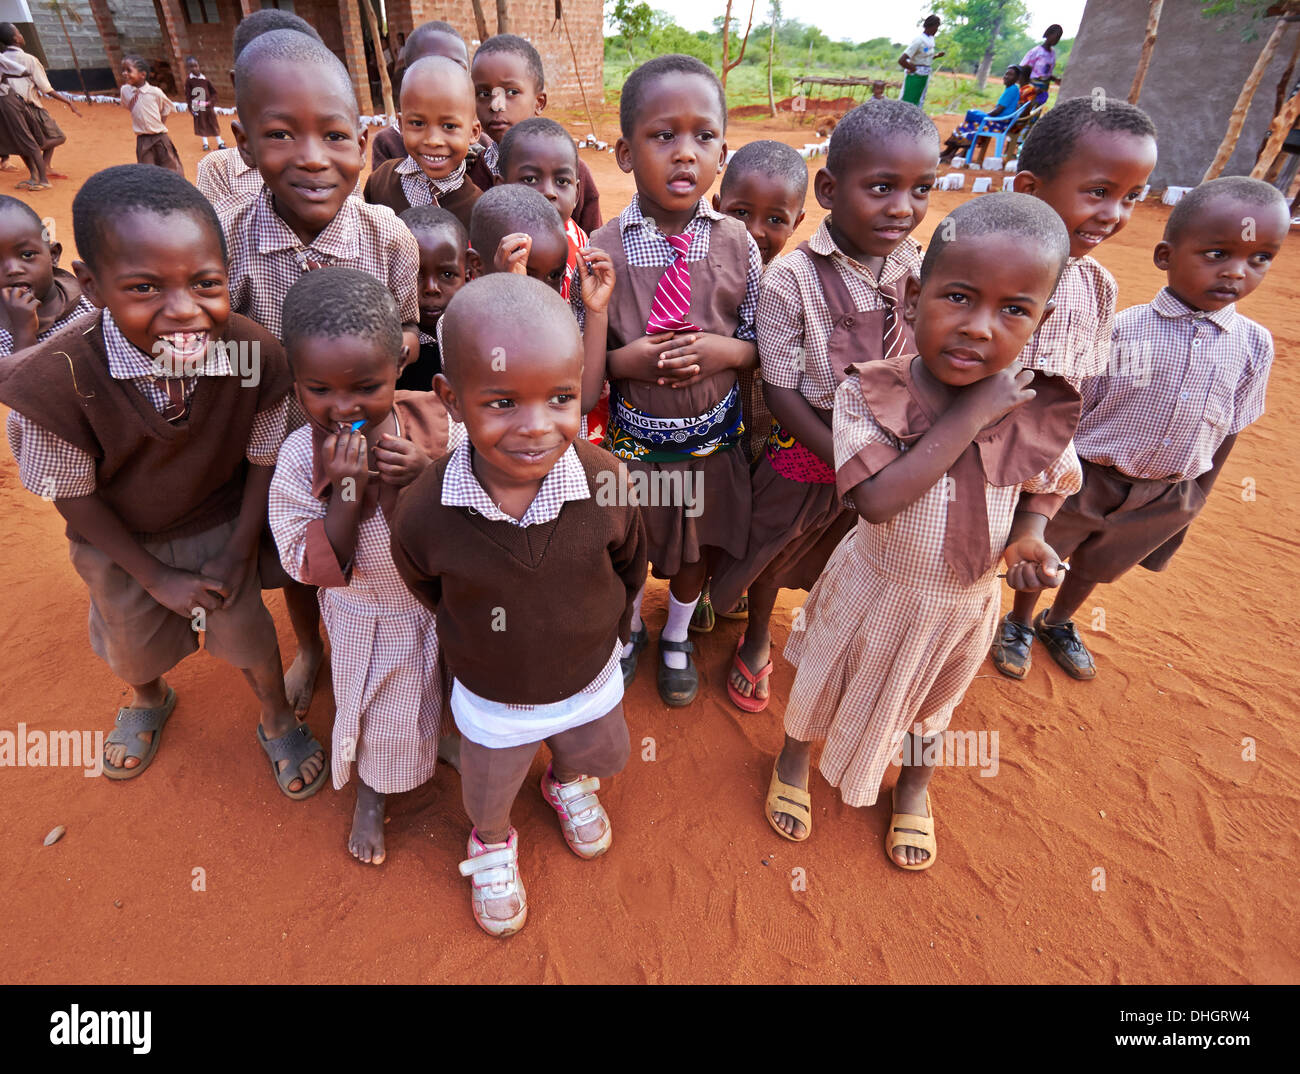 School kids line up for photographs in a Kenyan primary school near ...